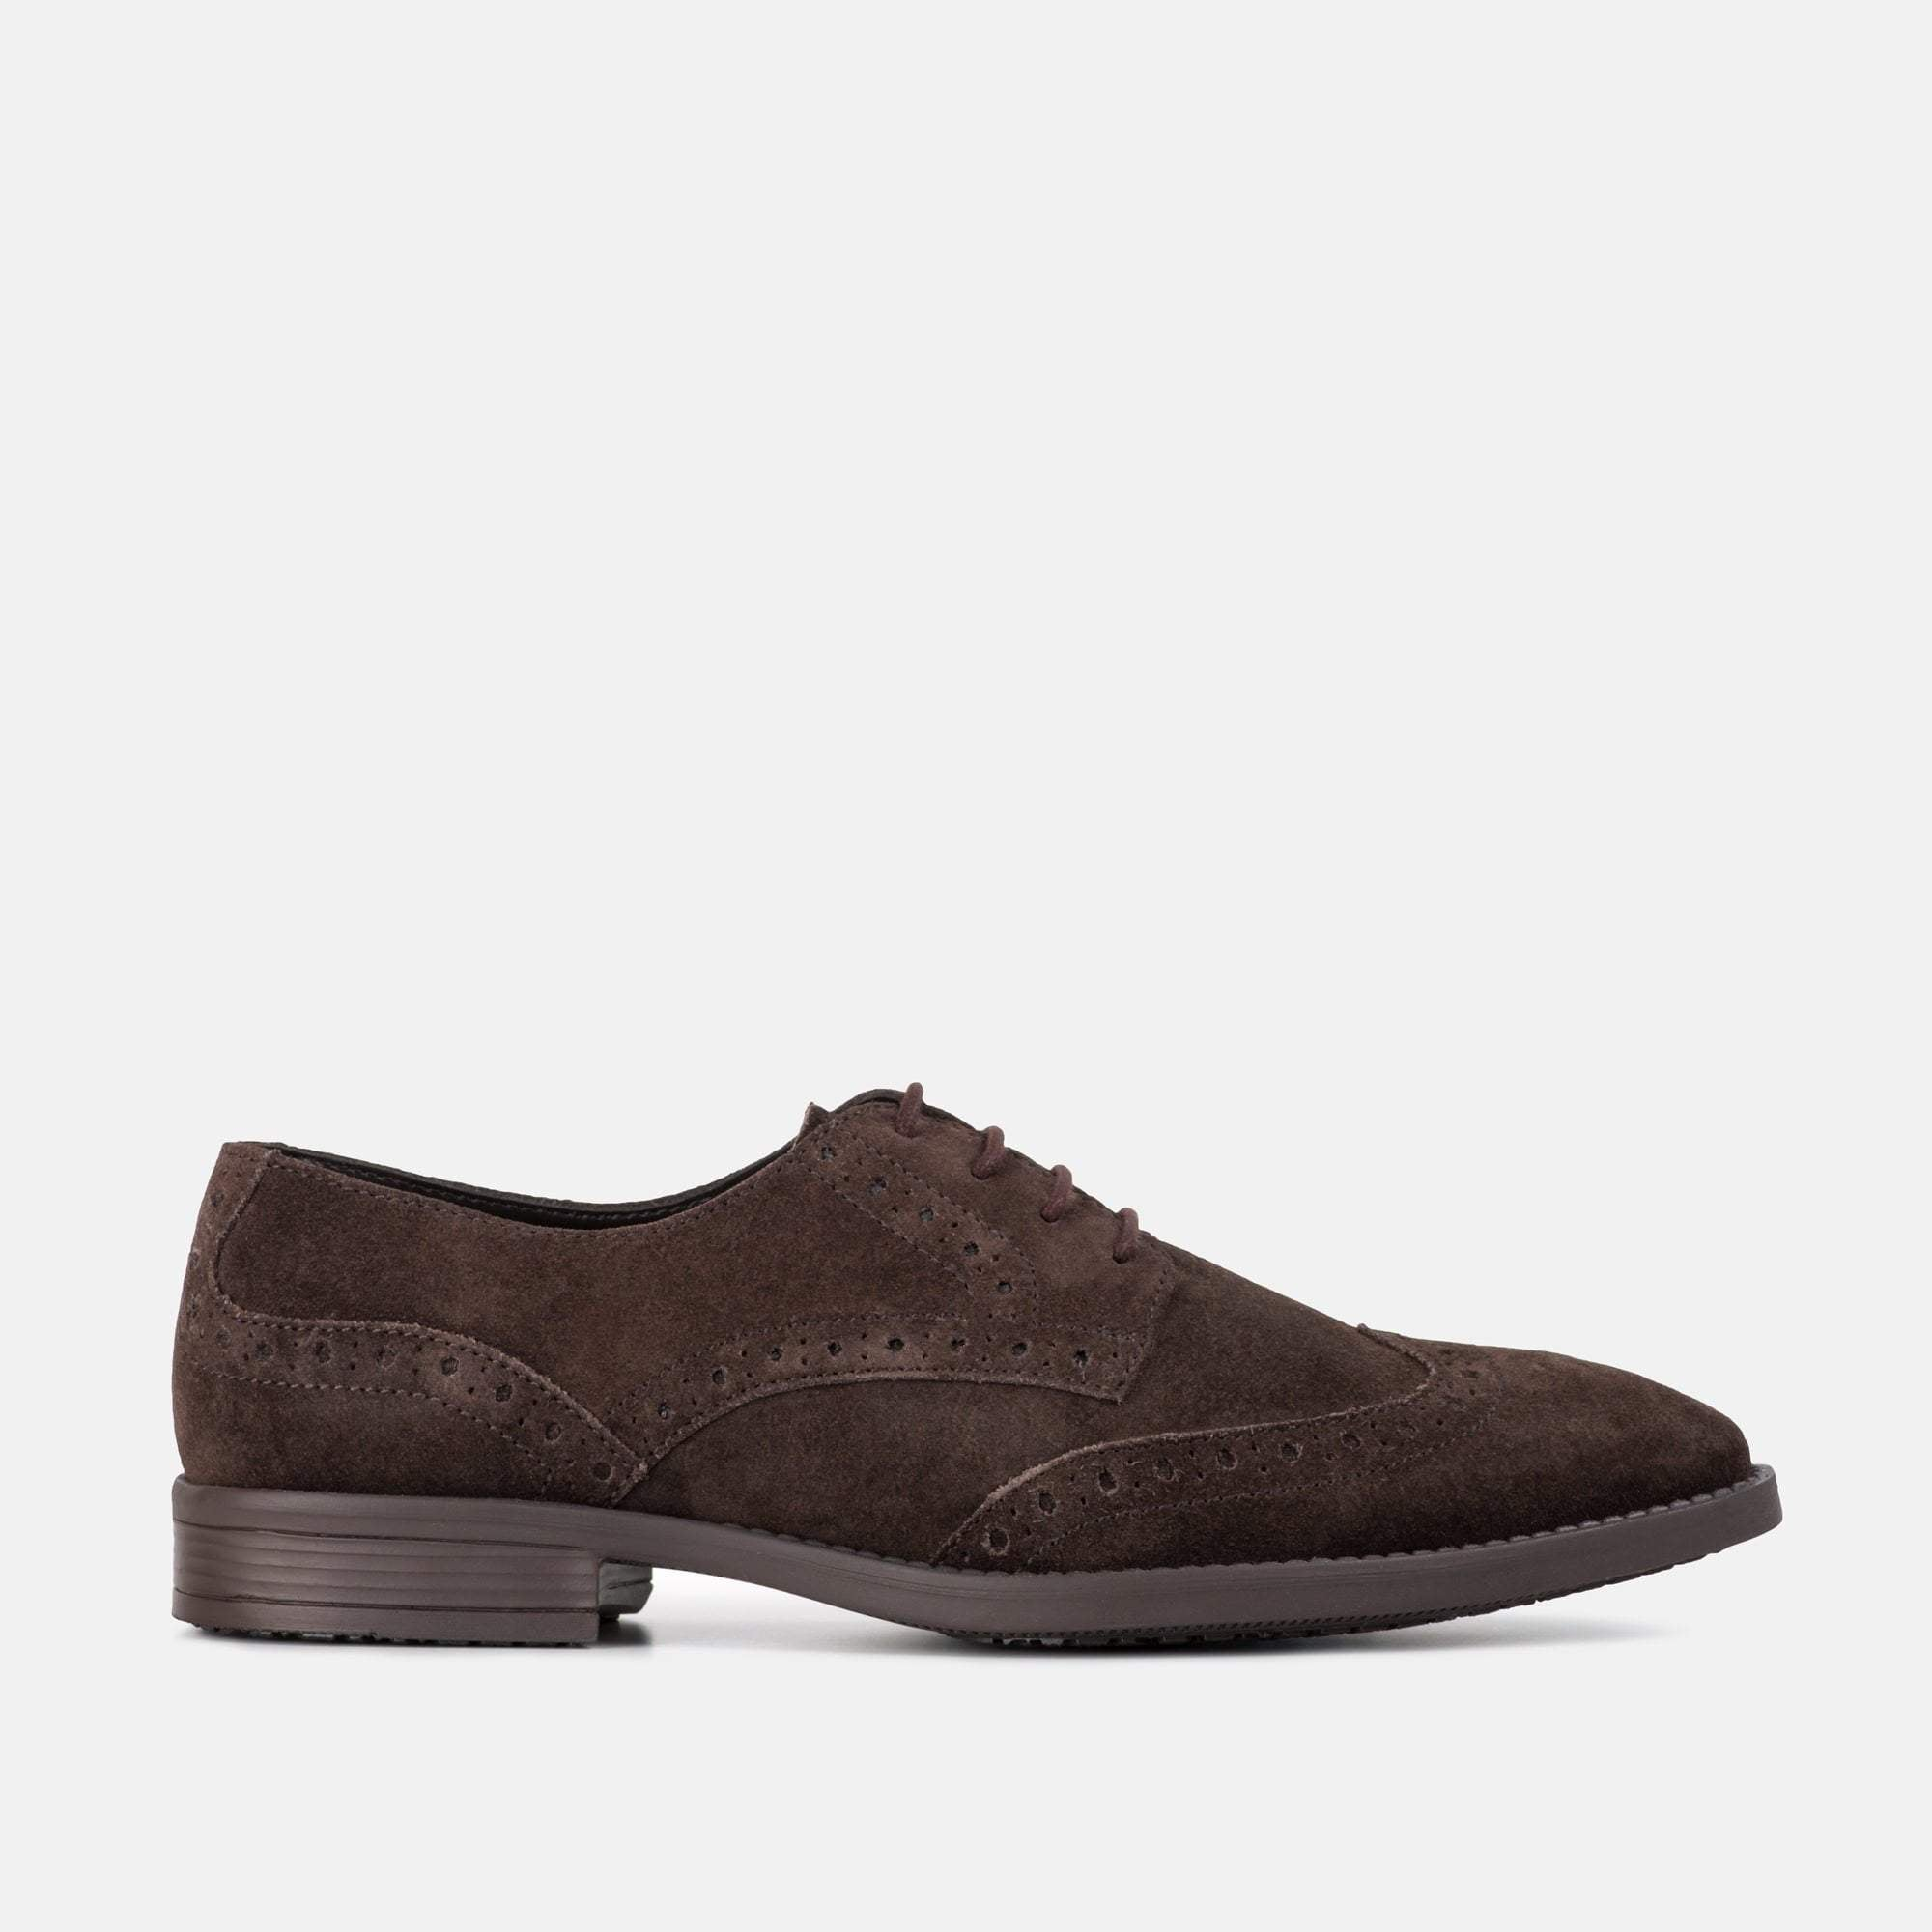 Redfoot Footwear UK 6 / EURO 39 / US 7 / Chestnut / Suede HARRIS BROWN